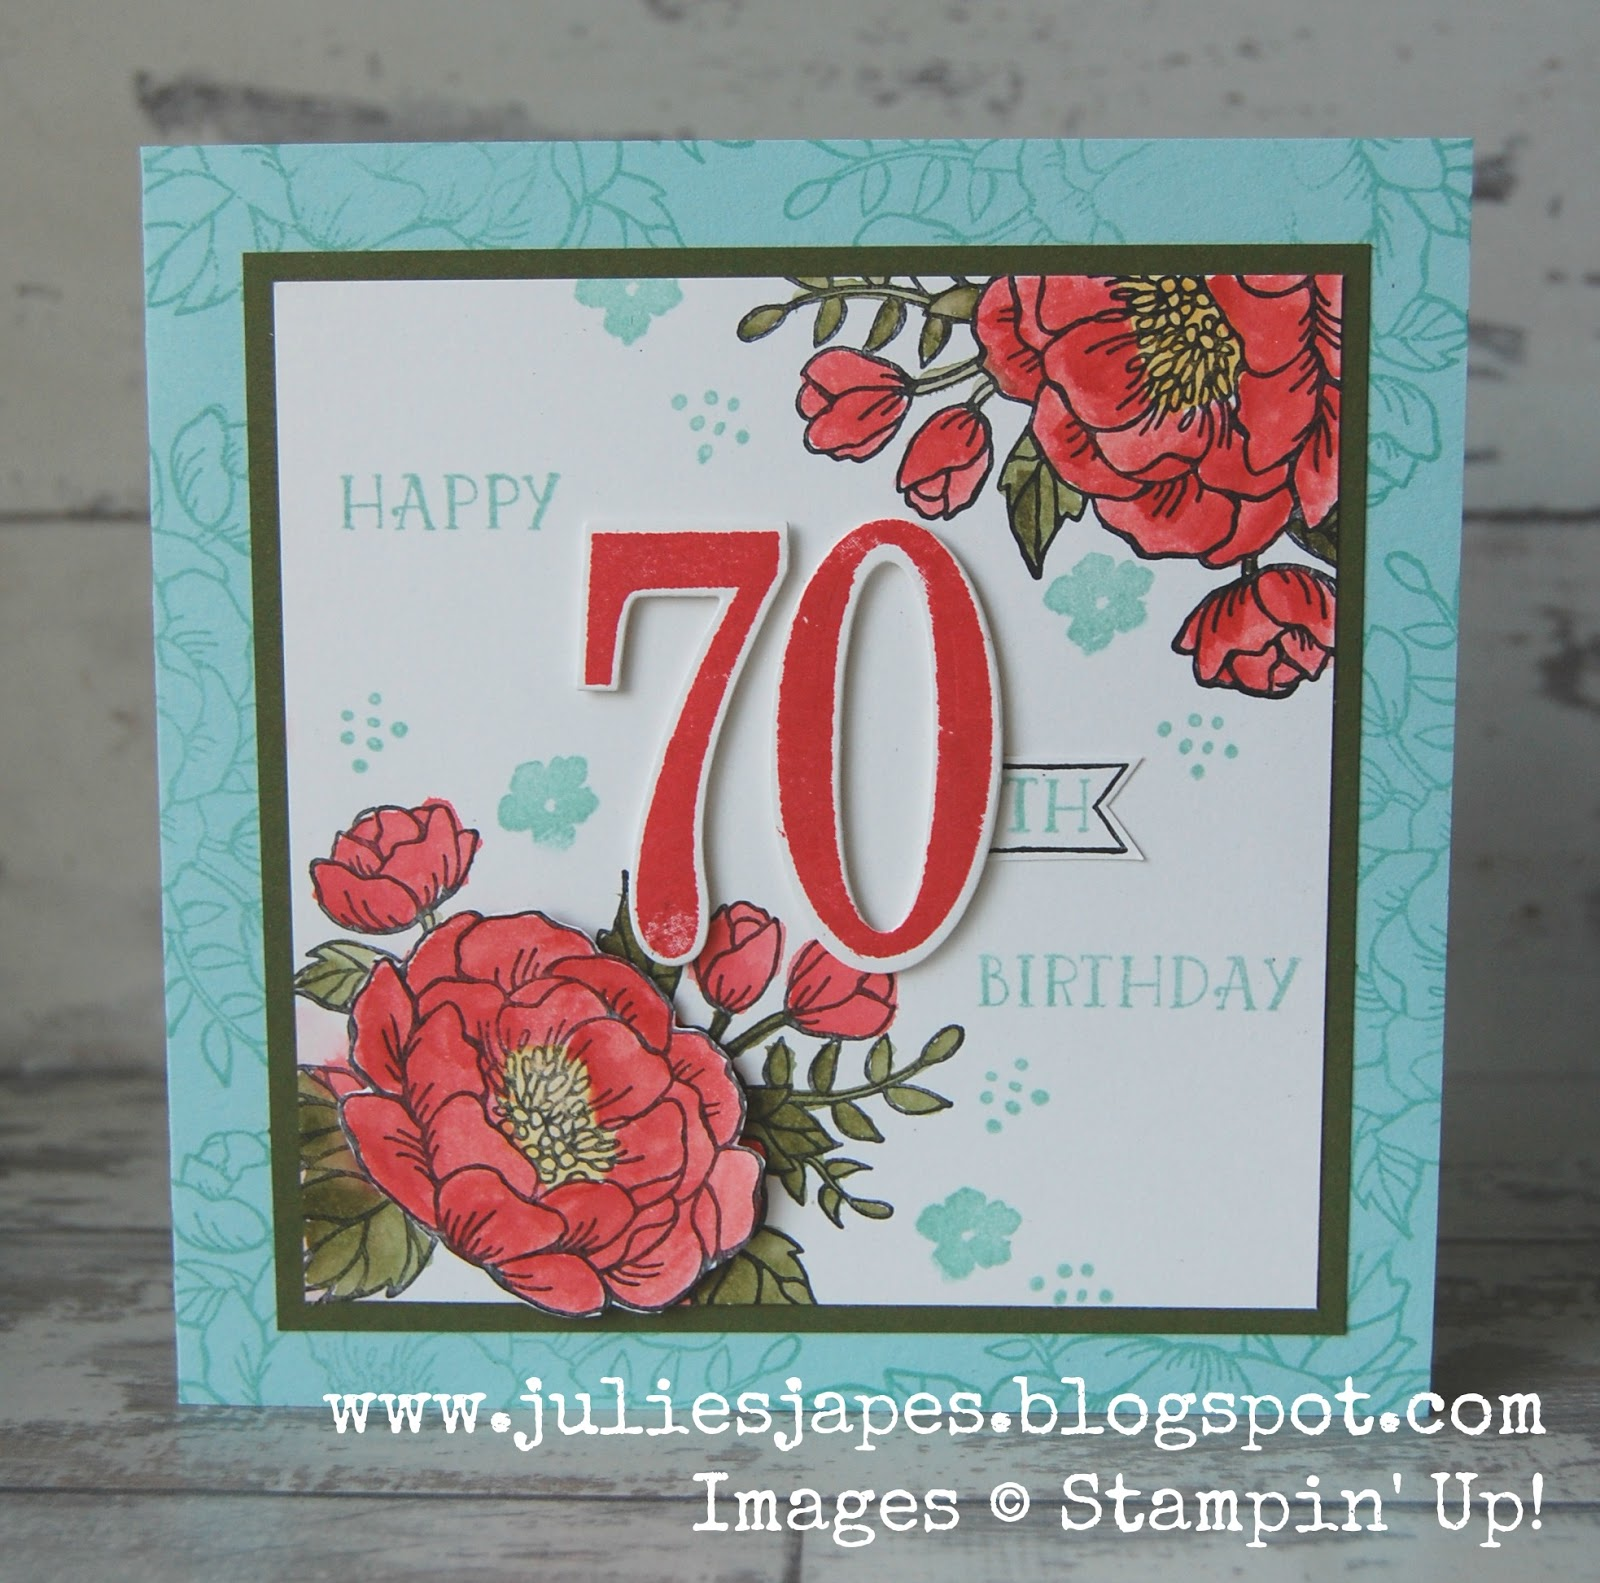 Julie kettlewell stampin up uk independent demonstrator order mums 70th birthday card bookmarktalkfo Choice Image